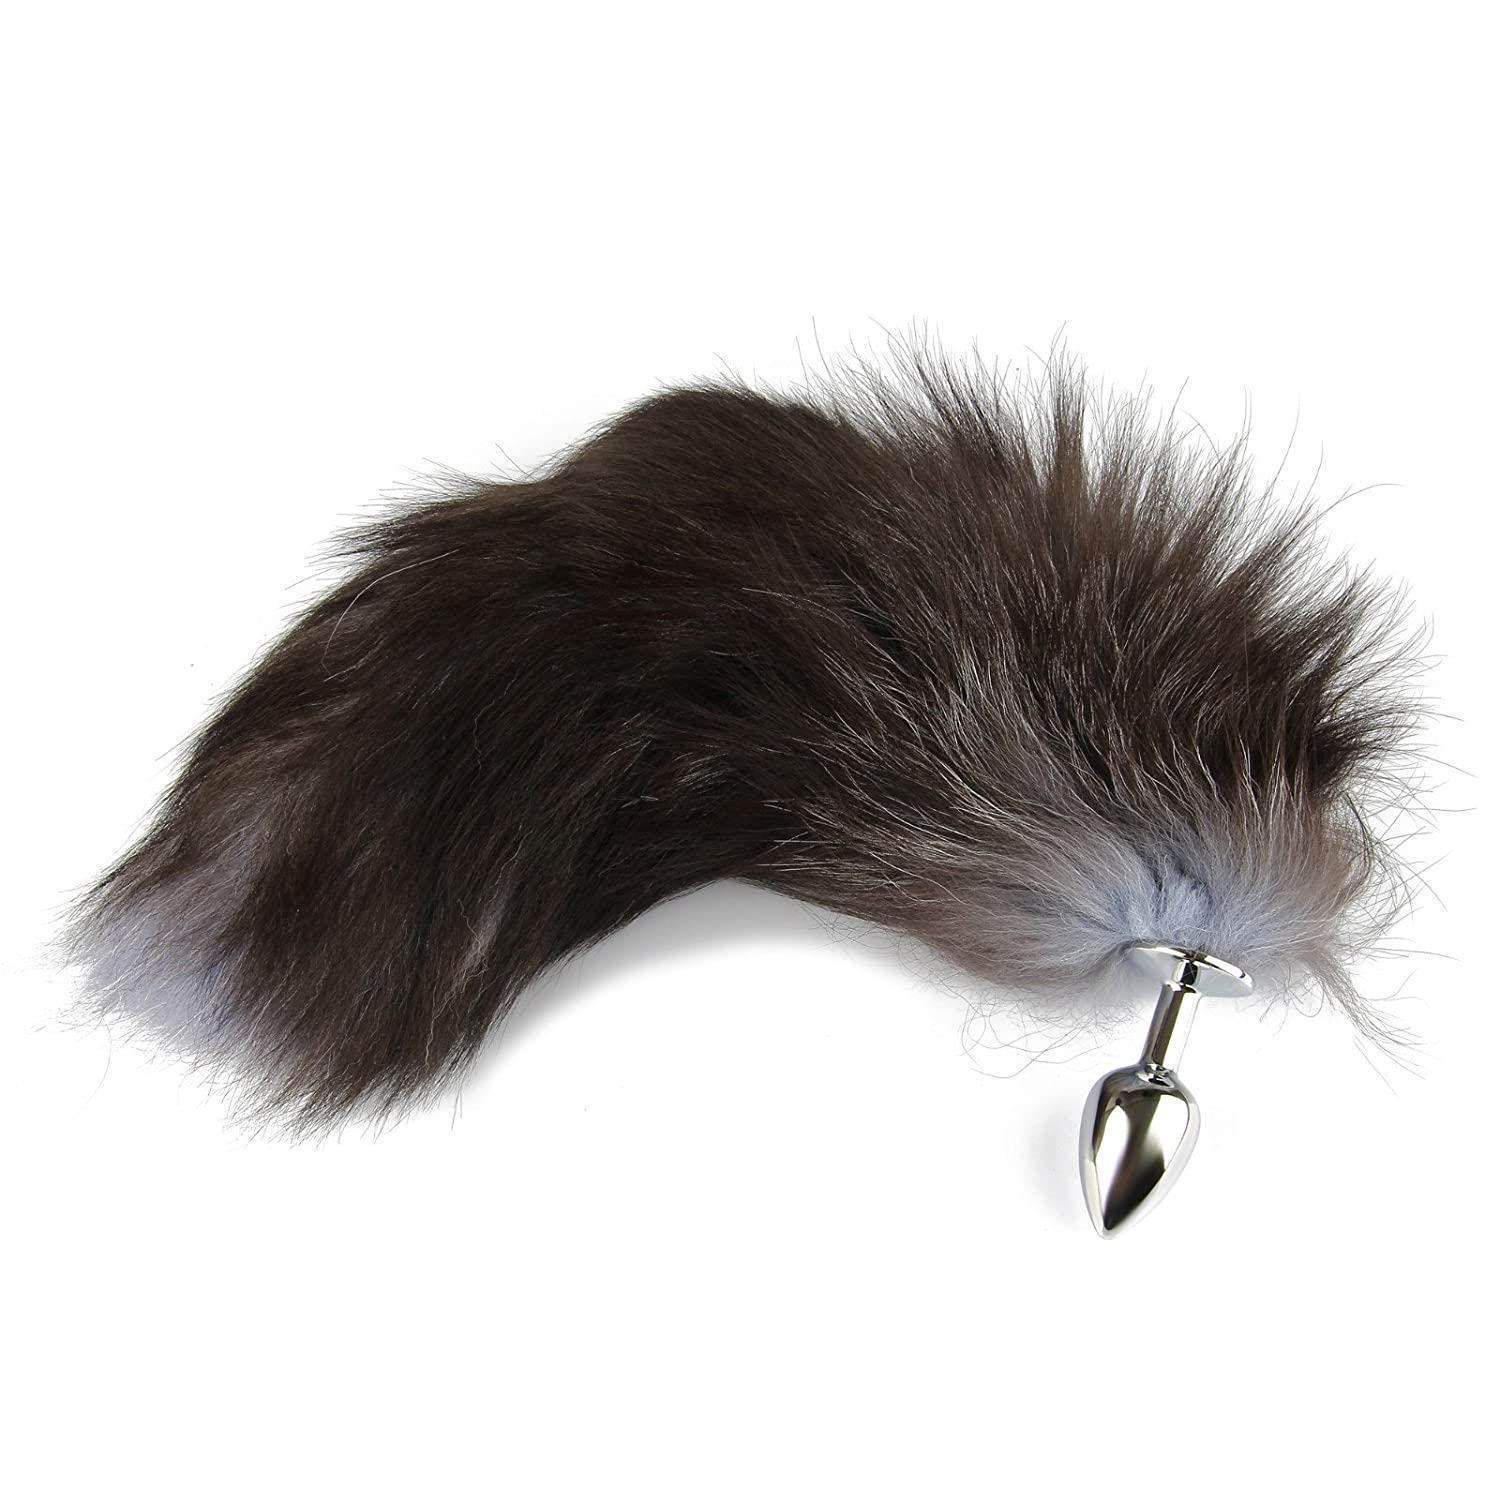 ee75713dc Amazon.com  Beauty7 Stainless Steel Soft Long Wild Fox Tail Butt Plug Anal  Anus Plugs Stimulator Cospaly Men Women Adult Sex Toy (Size L)  Health    Personal ...